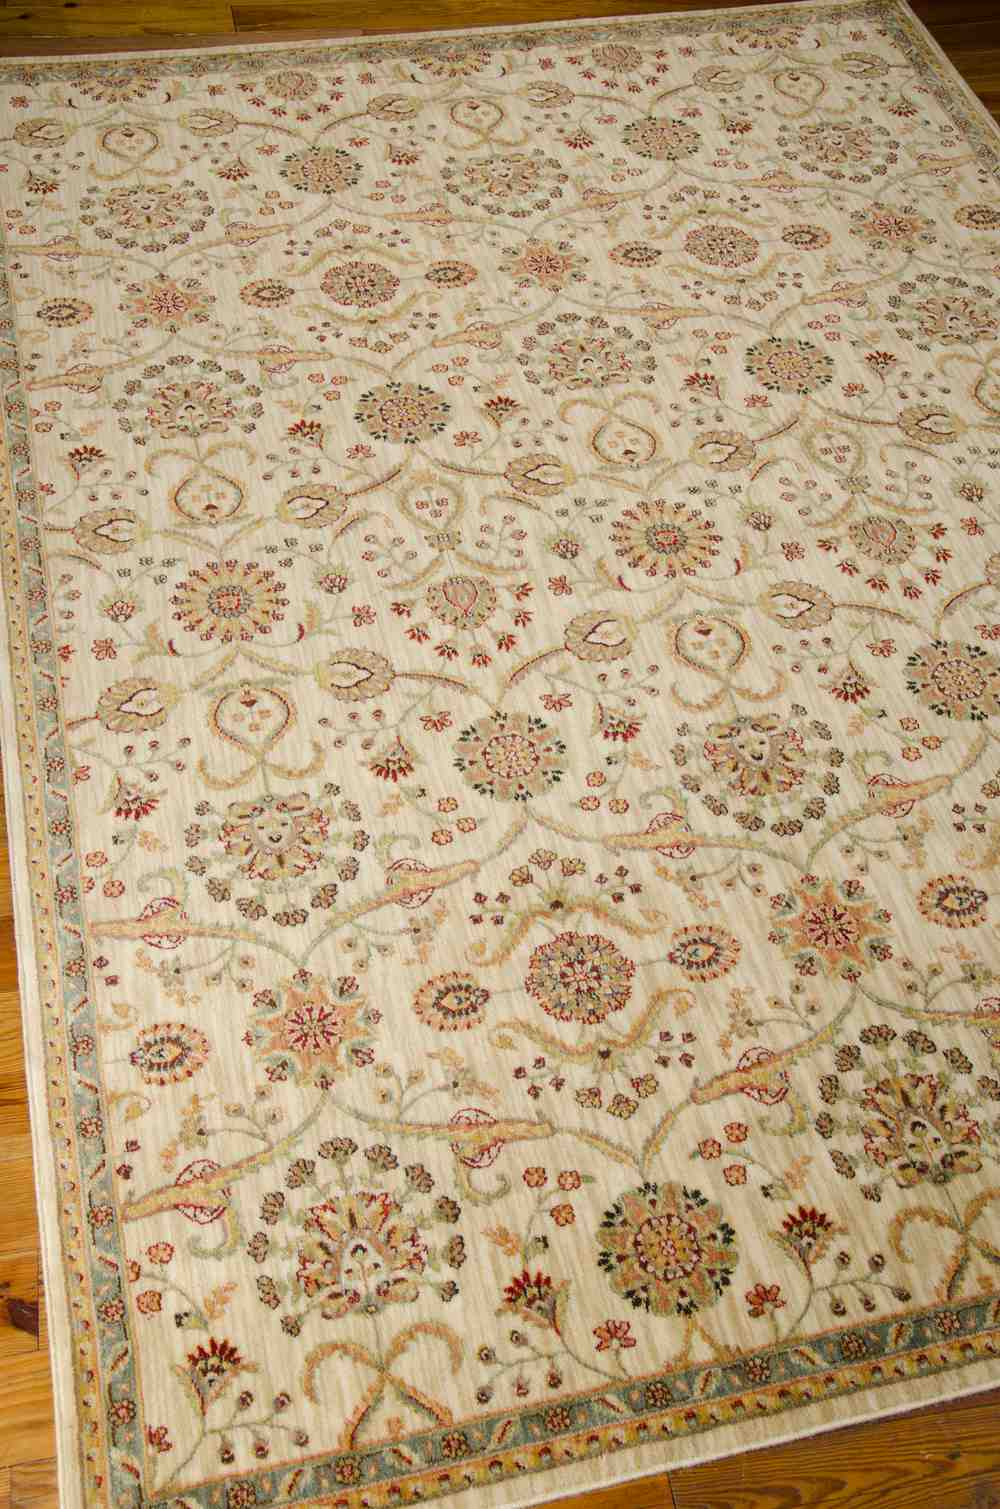 Nourison Kathy Ireland Ancient Times Bab01 Ivory Area Rug